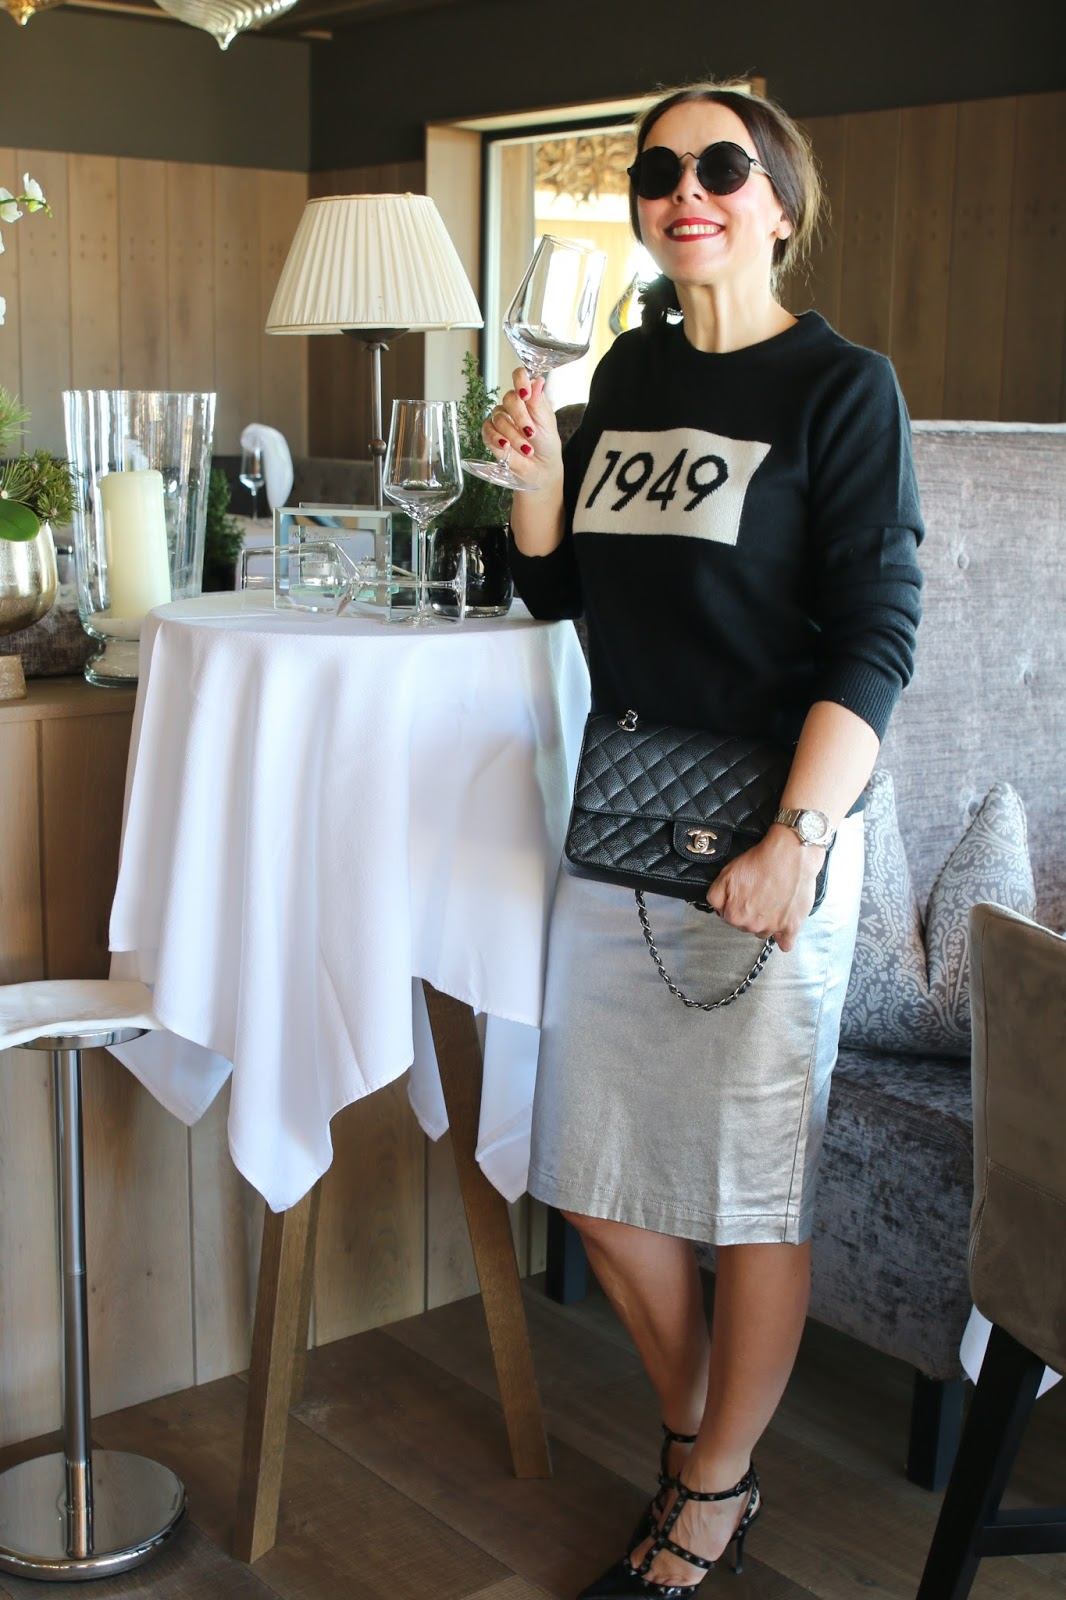 Outfit Gant 1949, silver midi skirt